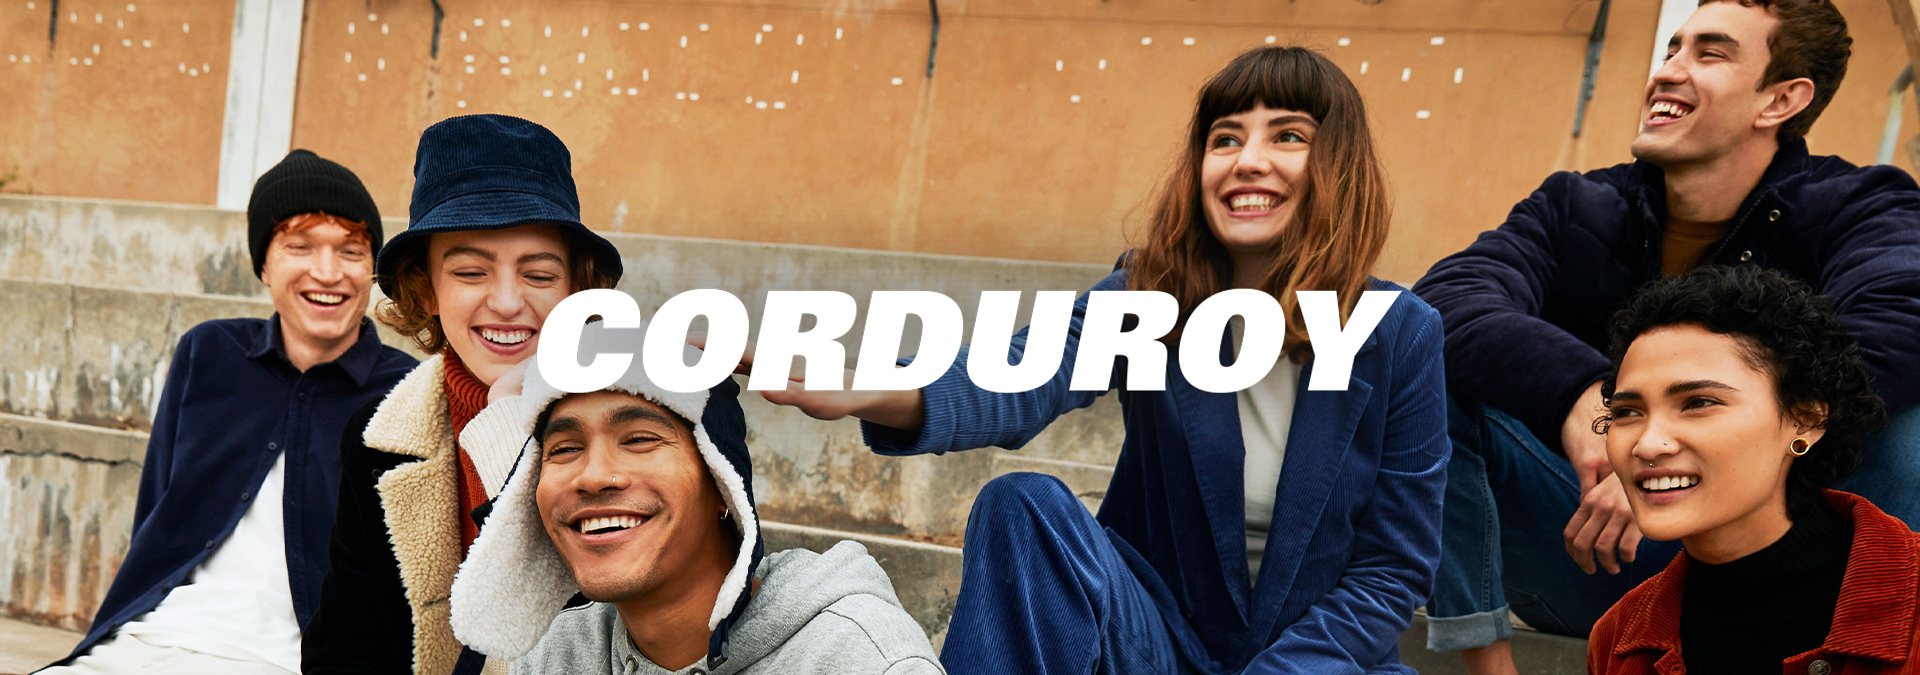 corduroy collection